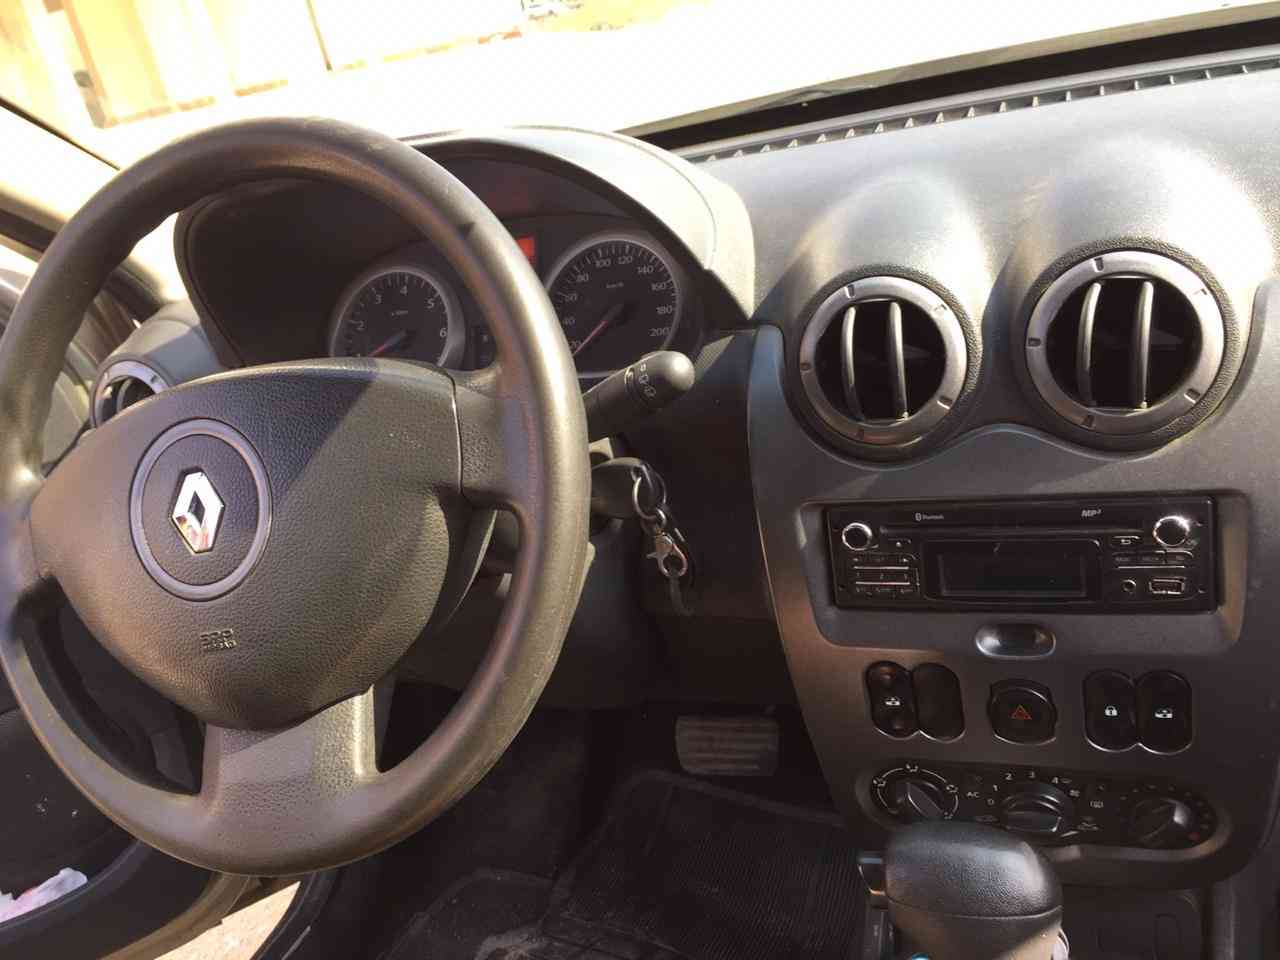 2015 Toyota FJ Cruiser for sale, still very clean in and out. The car is in good and perfect condition, The car has perfect tires and it is GCC Specs. Intereste-  رينو داستر 2014 لا تنسَ...